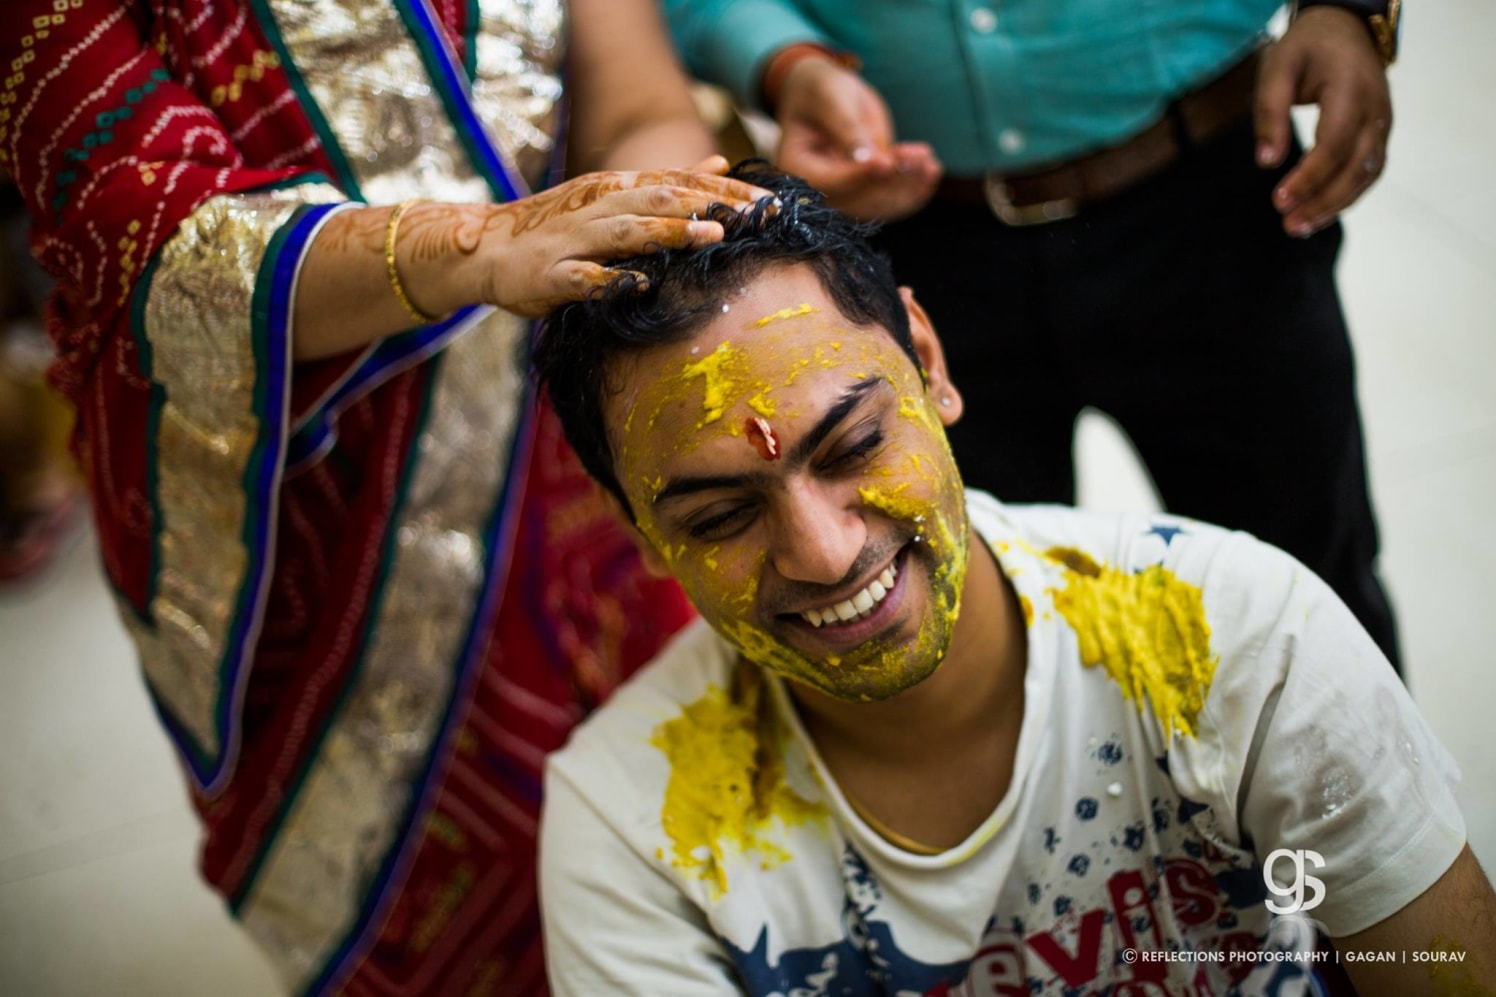 Drenched in haldi! by Reflections Photography